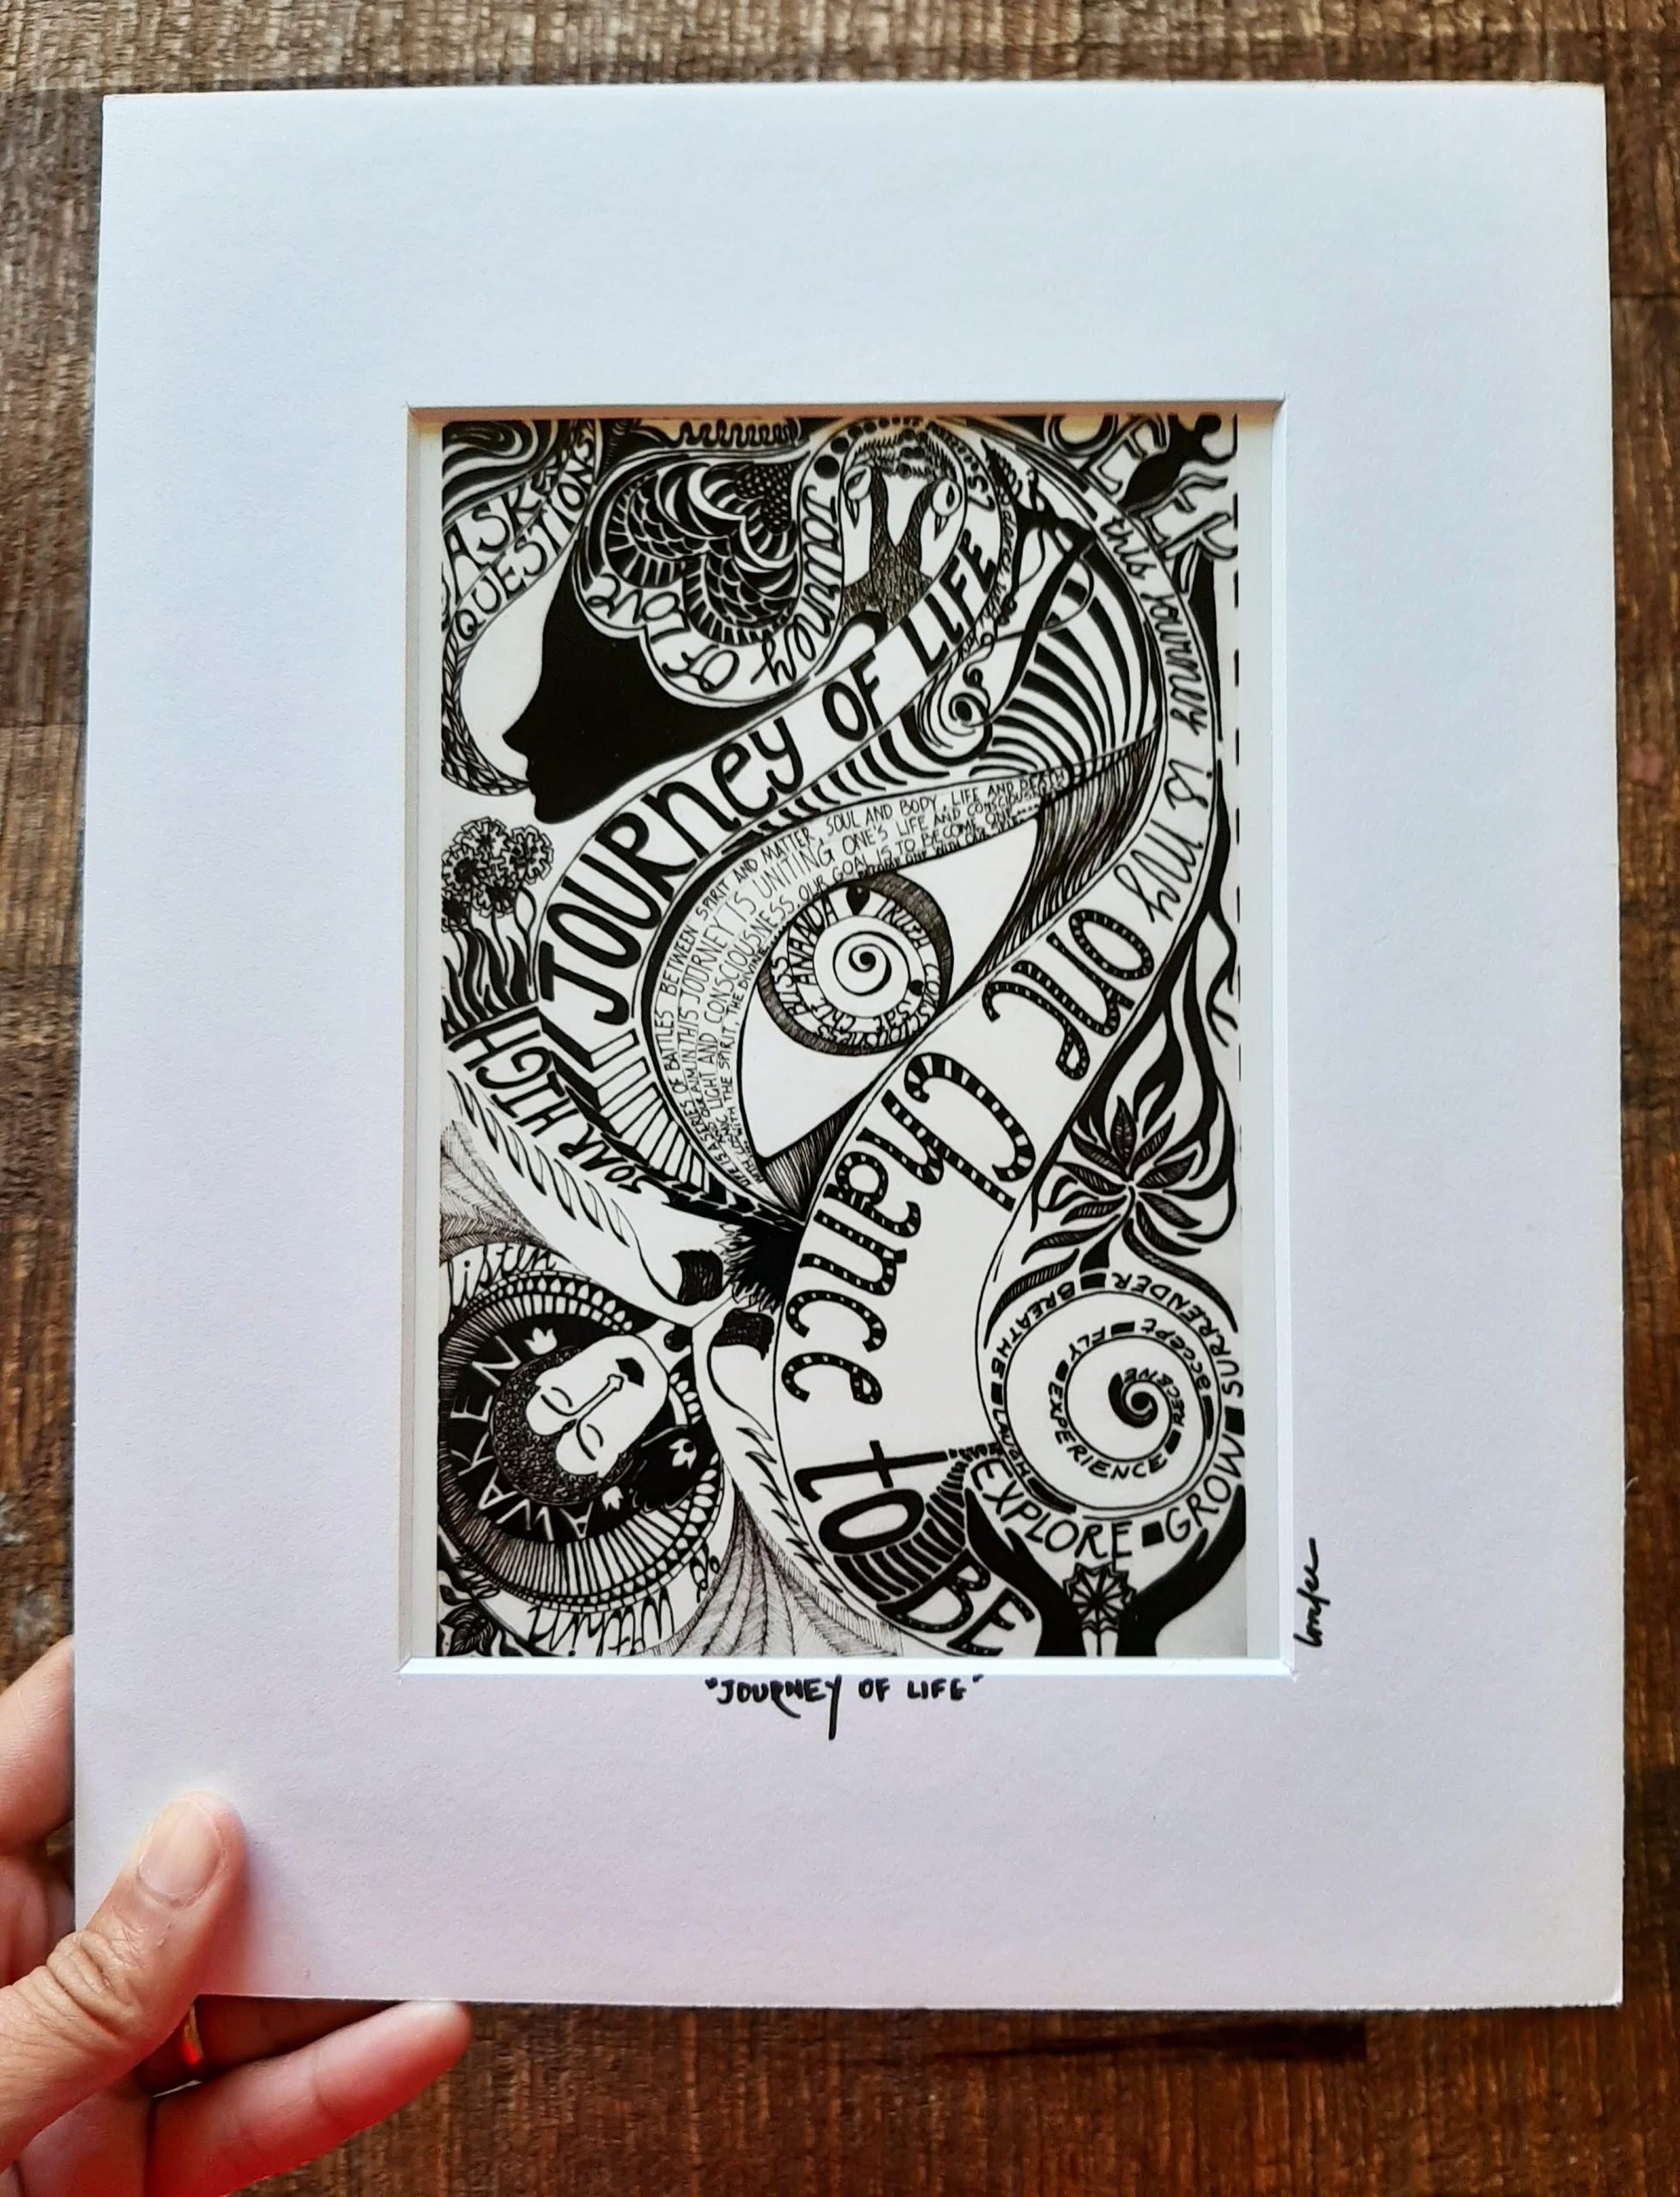 journey of life - matted art print